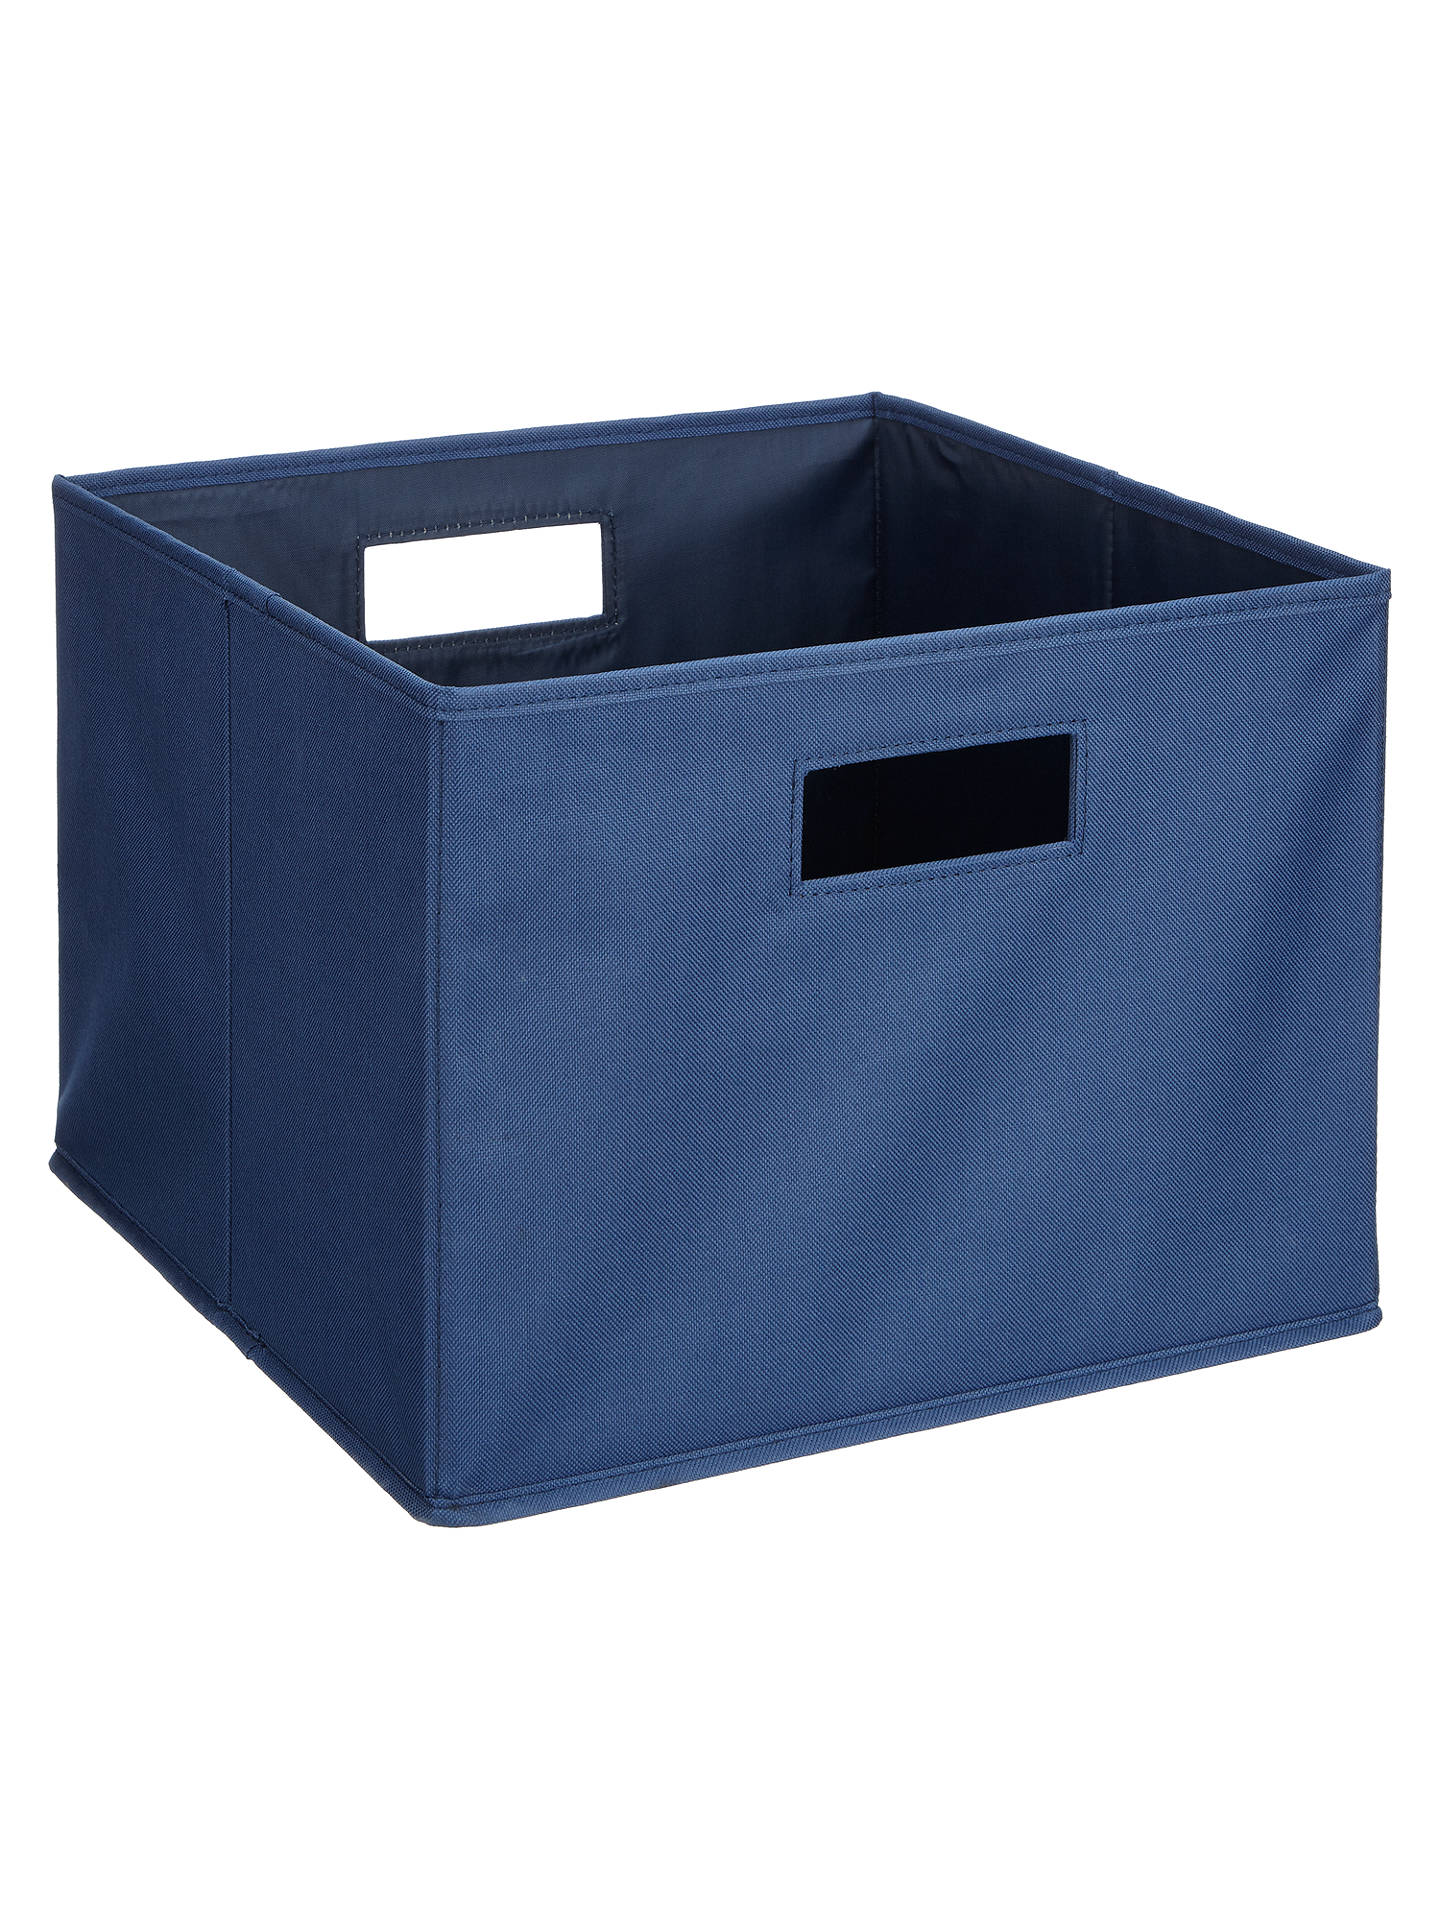 661bf8cd6bd Buy House by John Lewis Folding Storage Box